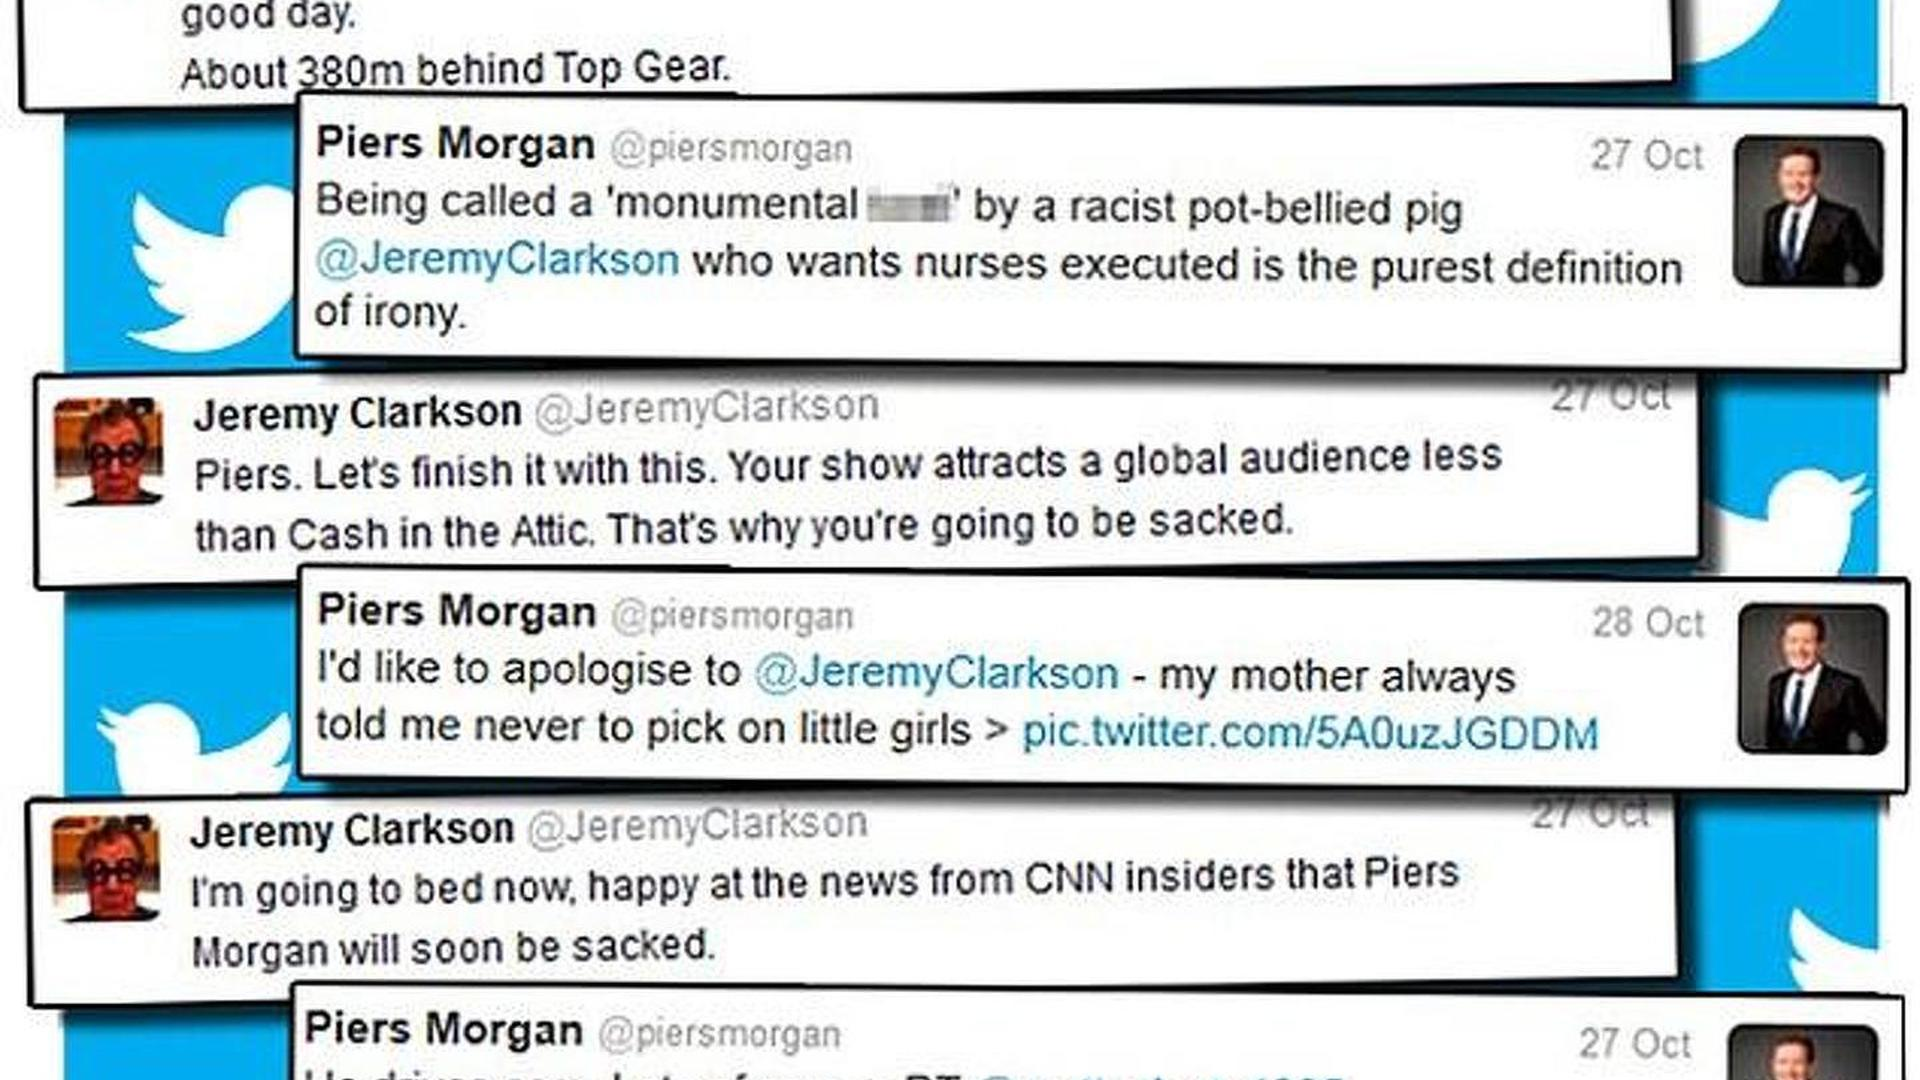 Jeremy Clarkson & Piers Morgan continue comical online feud on Twitter